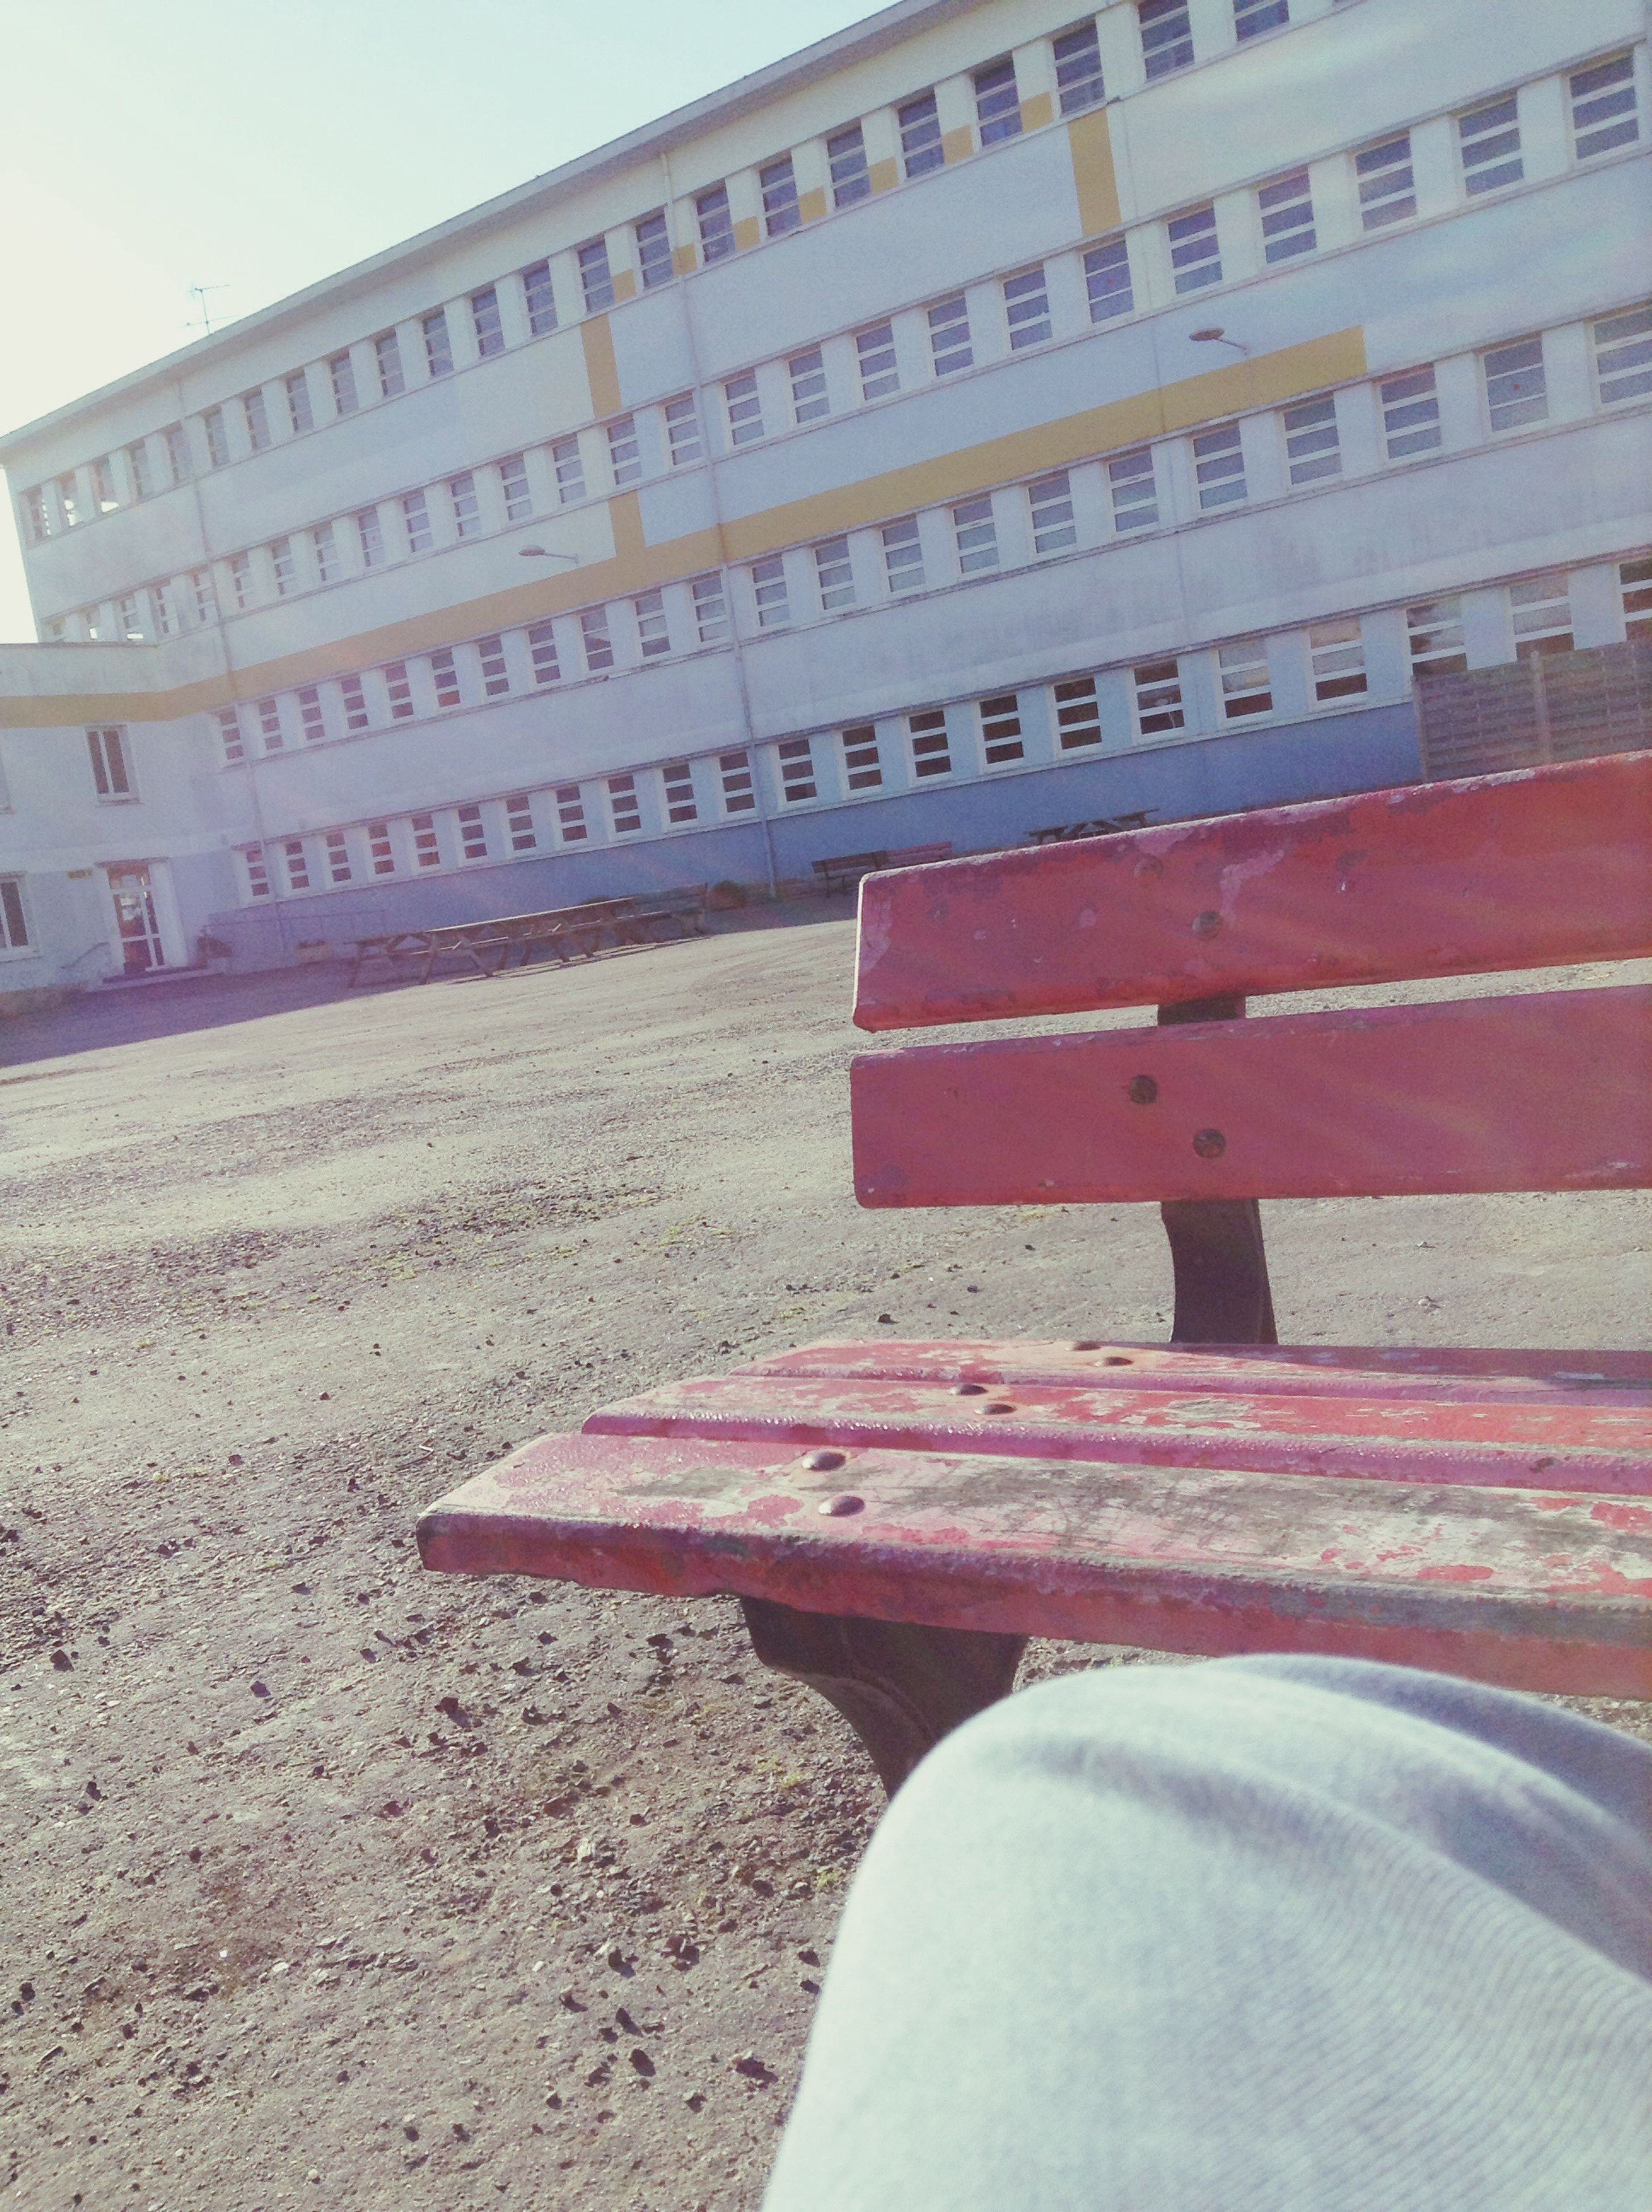 built structure, architecture, building exterior, day, red, outdoors, sky, no people, steps, building, city, sunlight, wall - building feature, bench, close-up, stone material, absence, street, part of, cropped